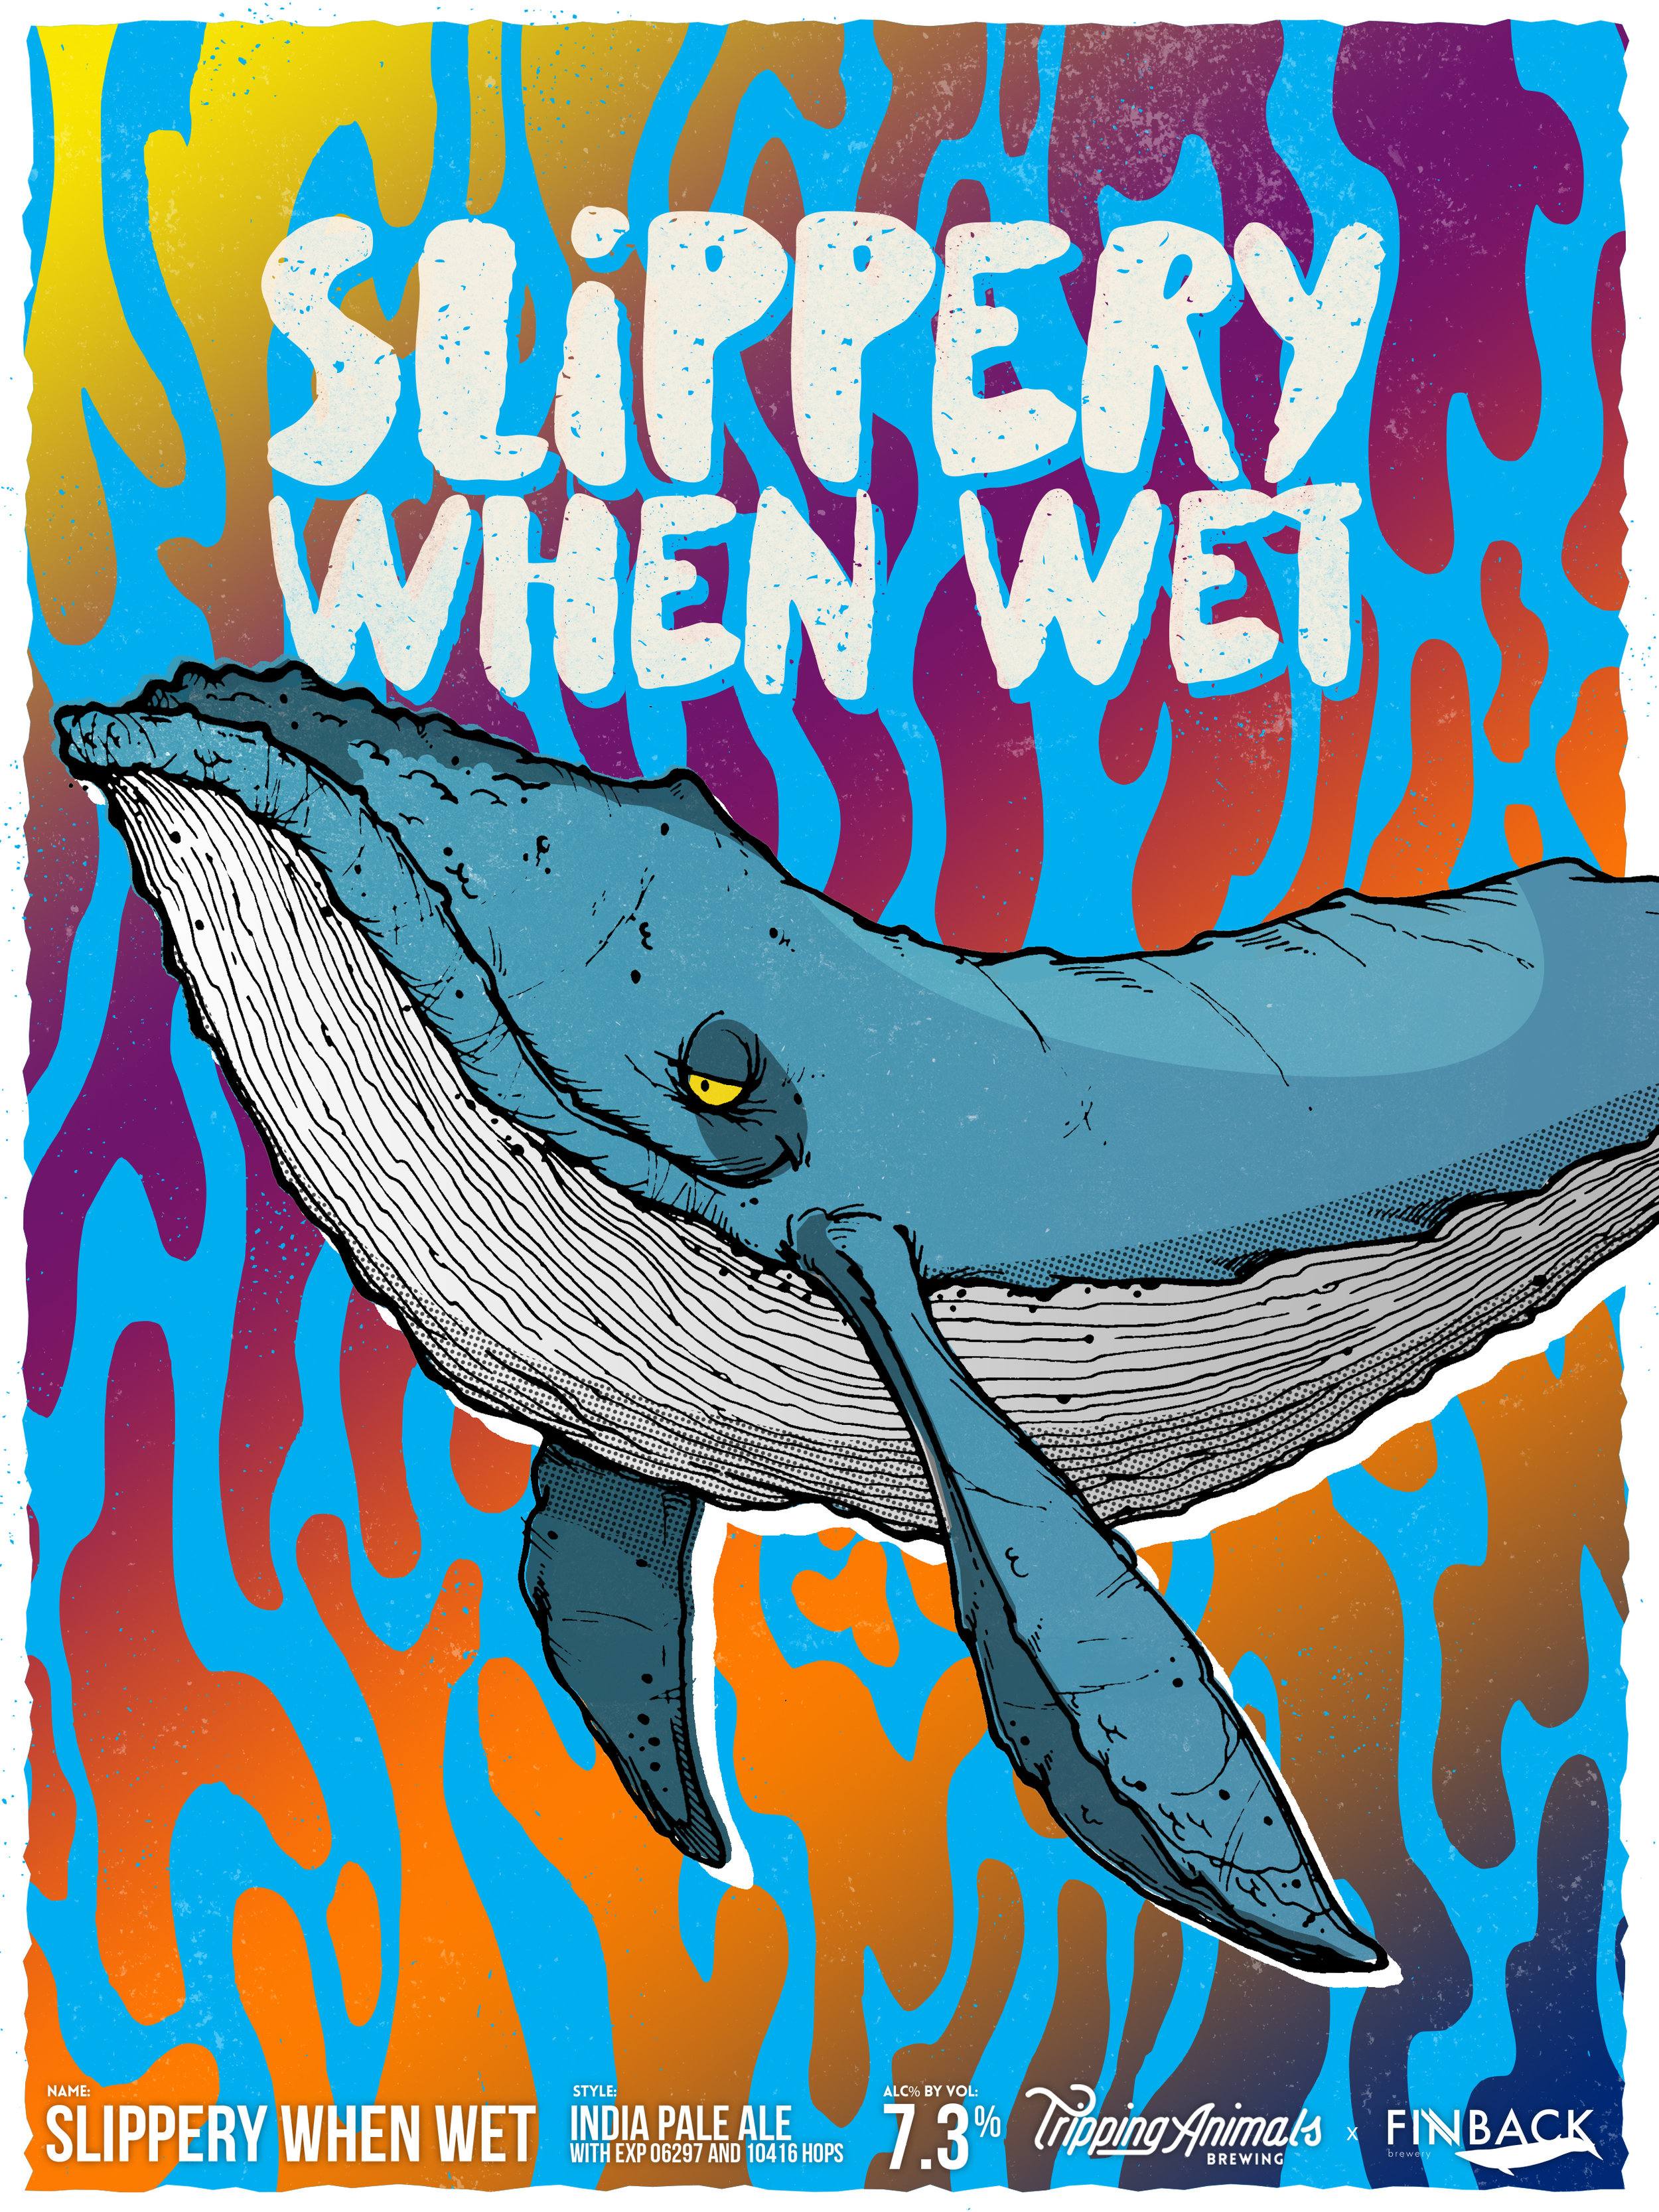 Slippery When Wet / Collab with Finback Brewery